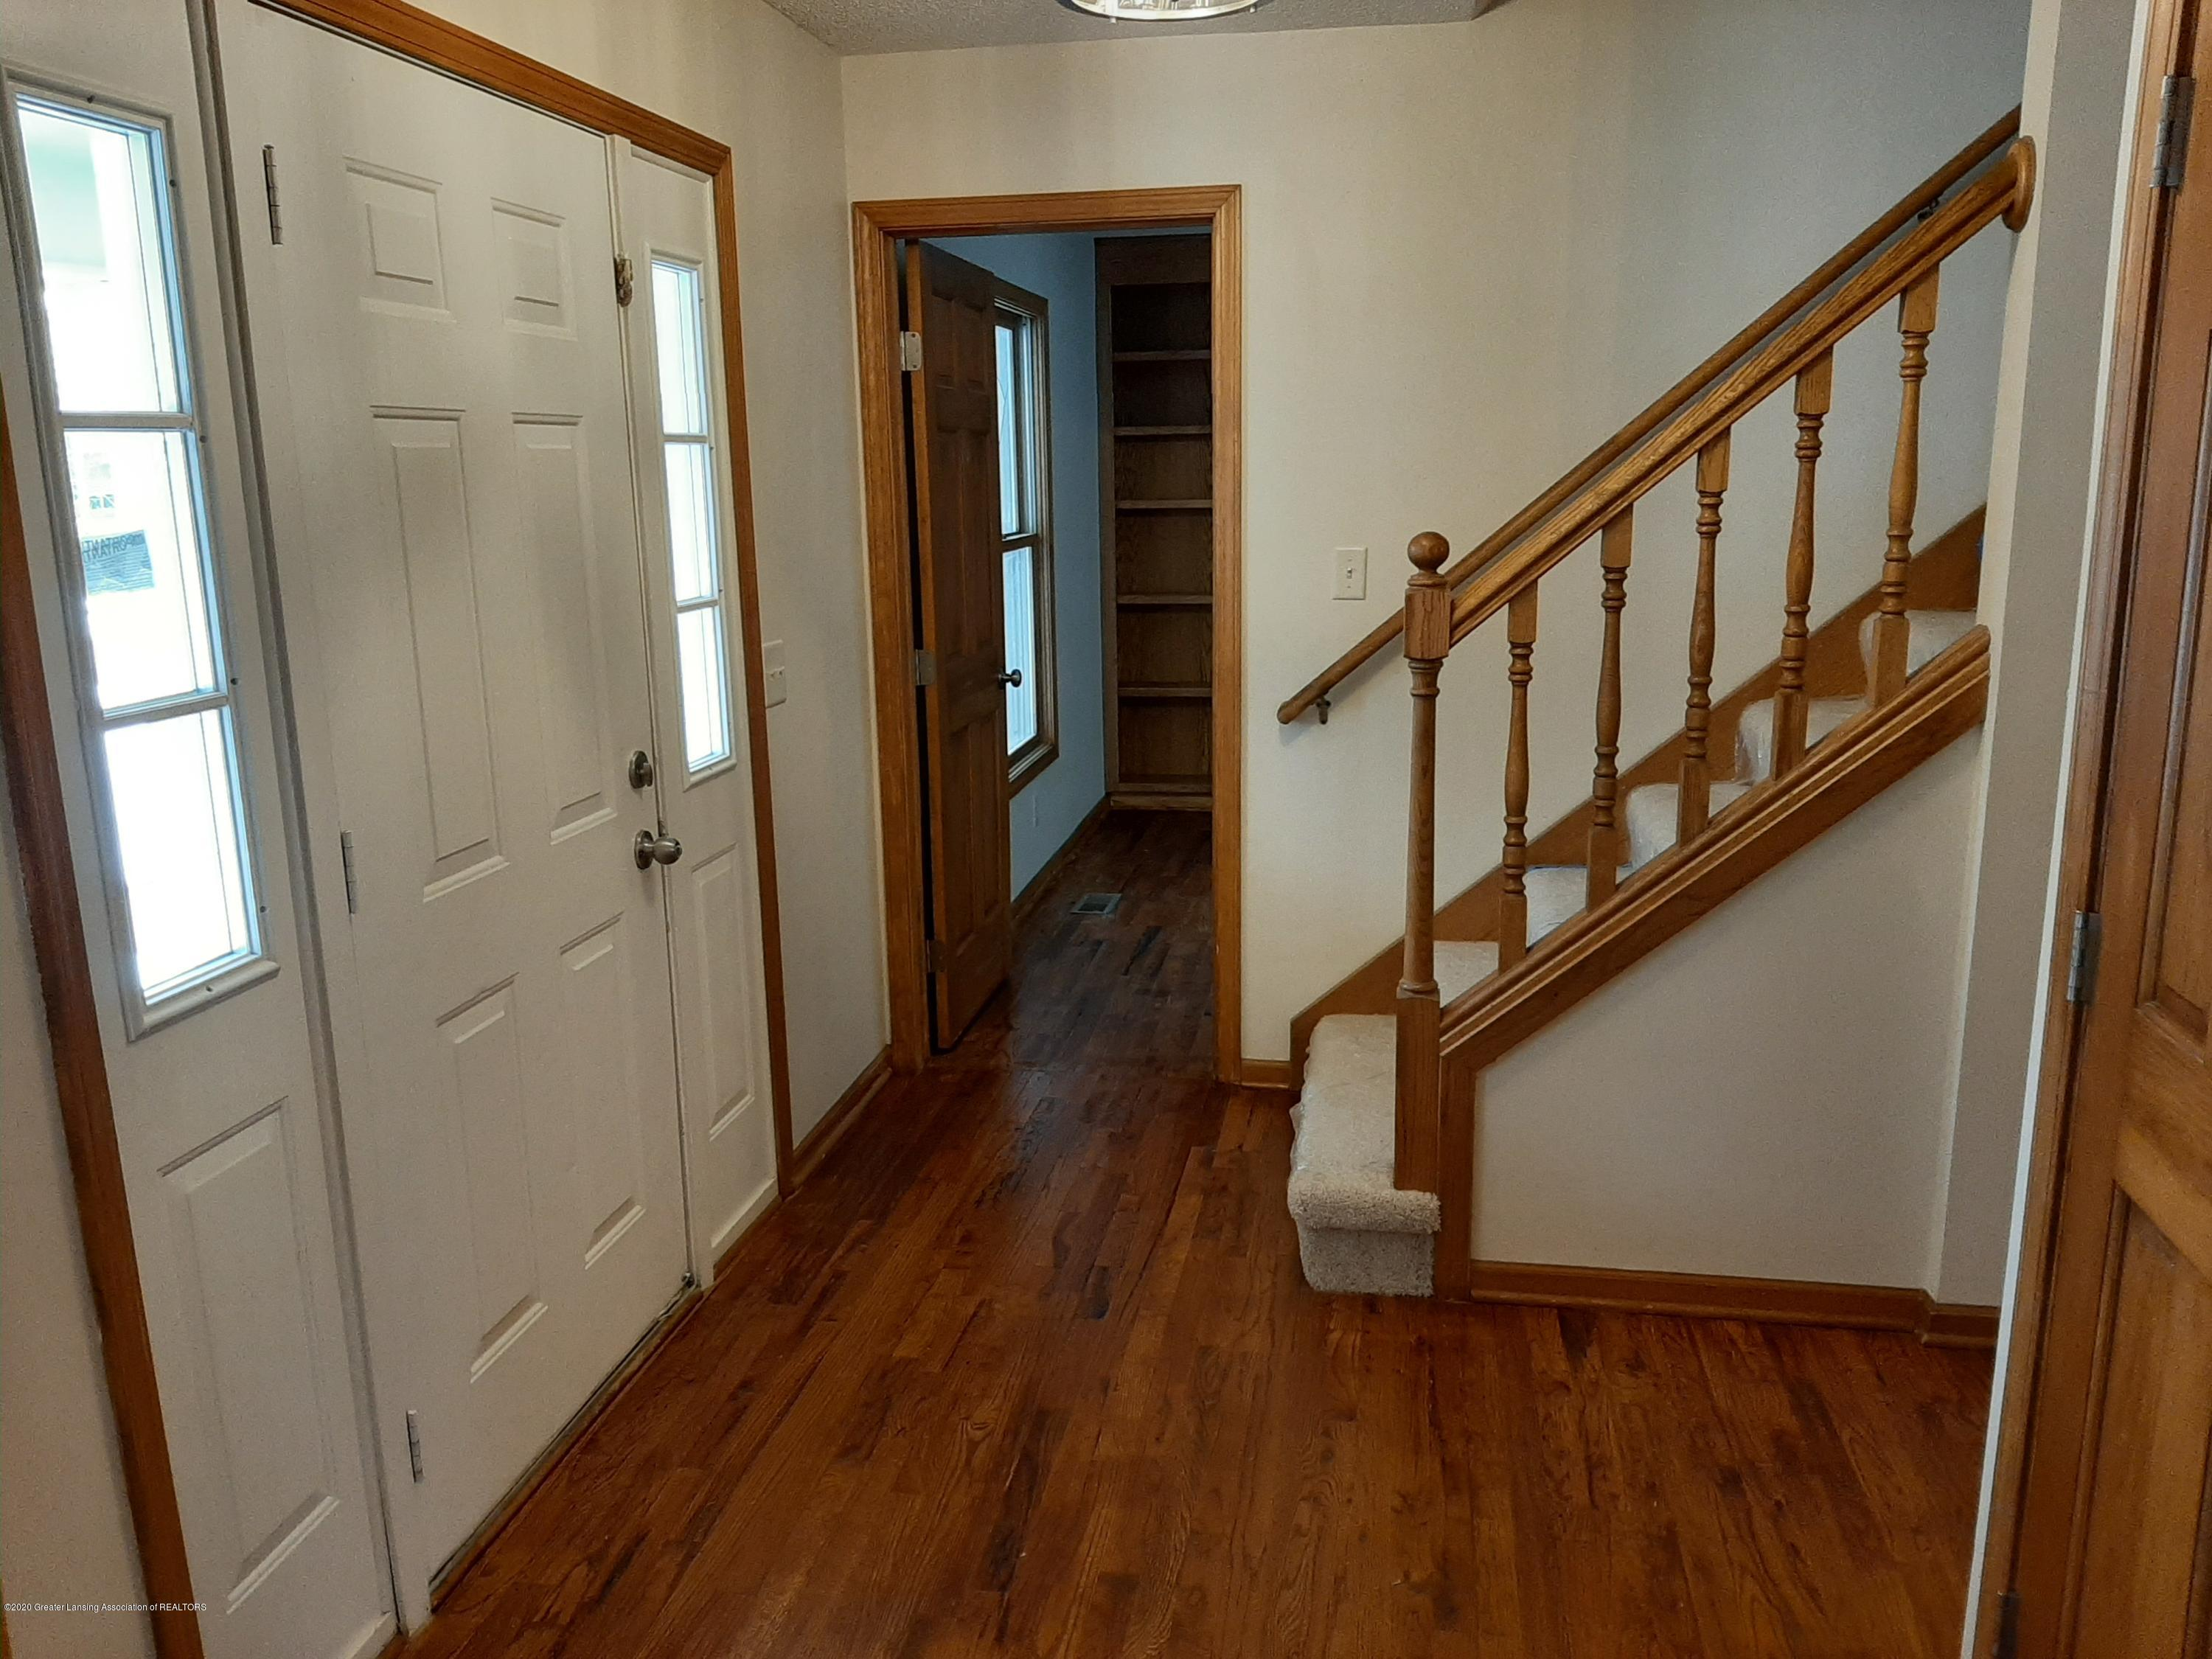 4366 Alderwood Dr - Entry Room - 15